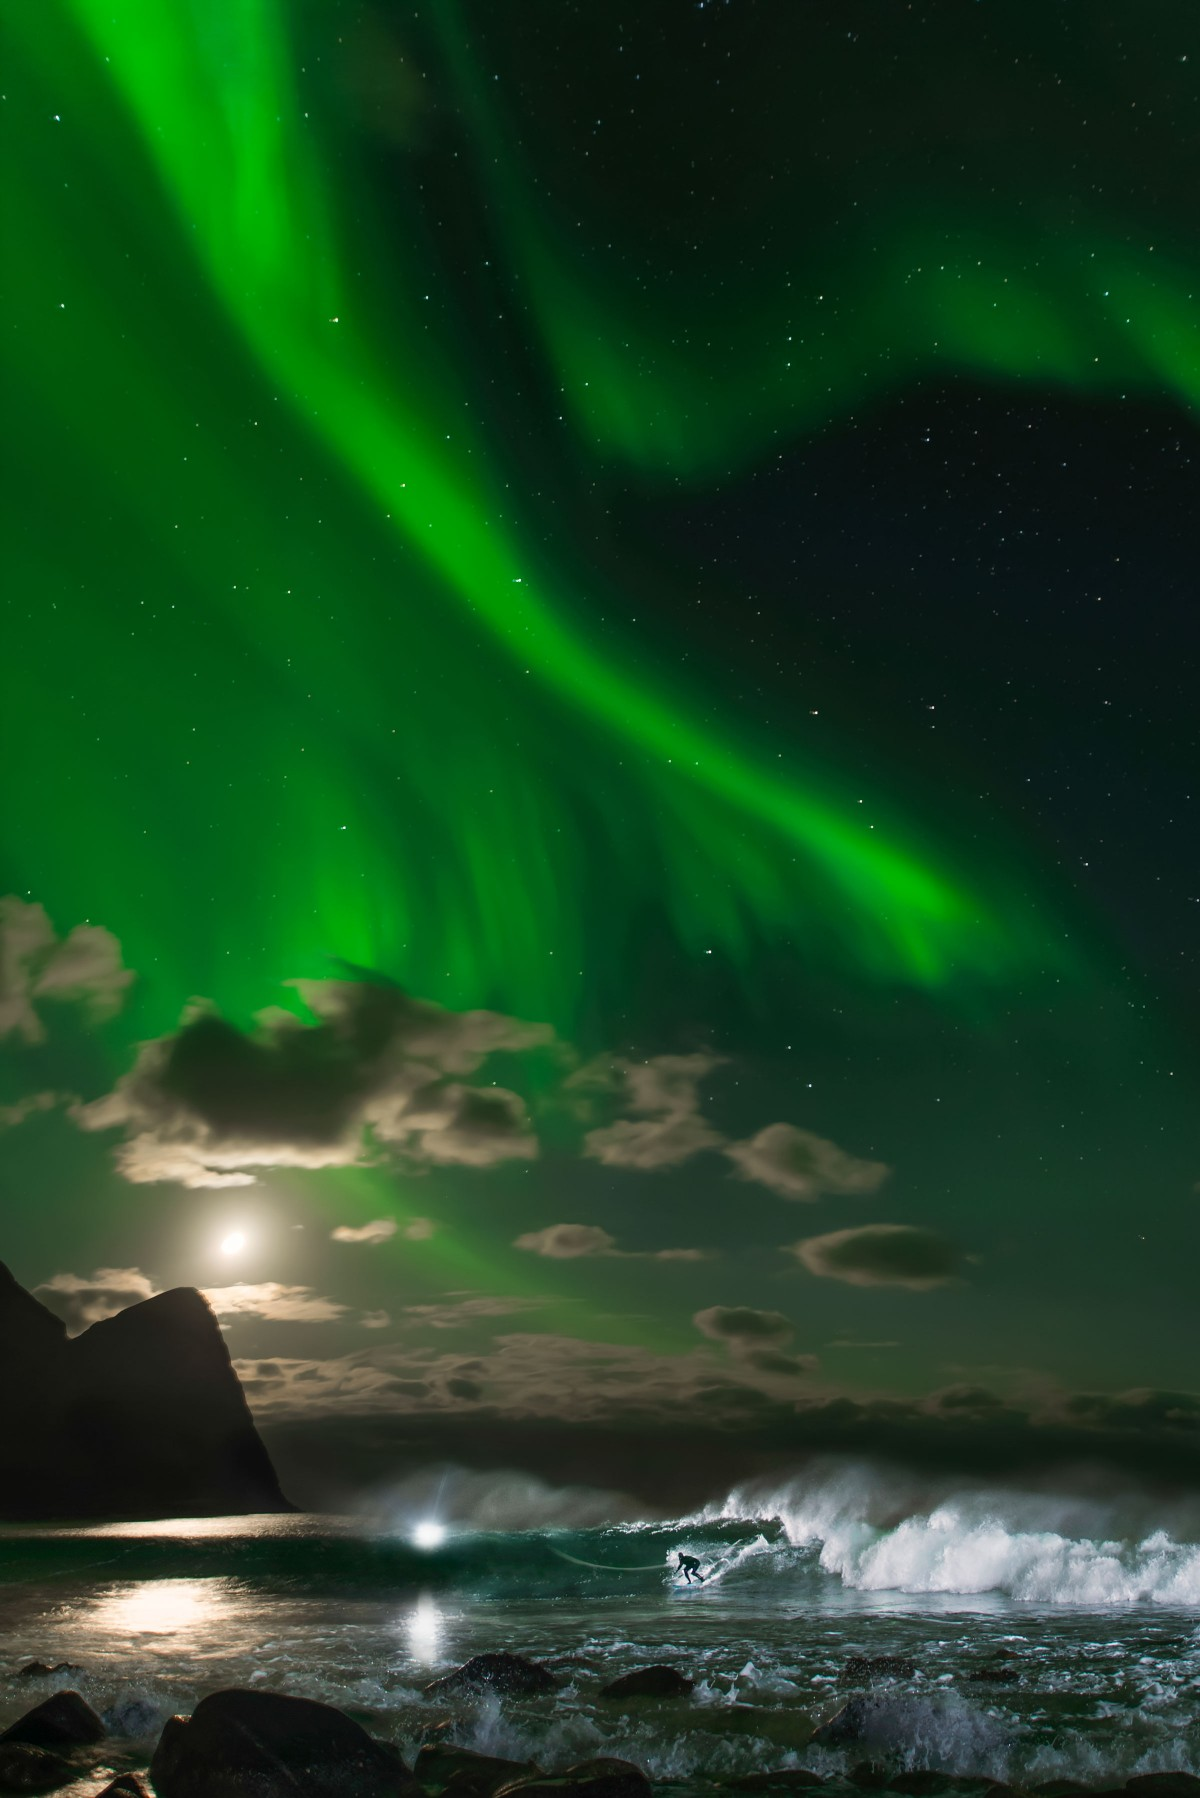 This is one of the most technical shots I've ever done!-Emil Sollie - The shoot took place in Lofoten, a far flung speck of a town on Norway's smashed plate of a coastline.The surf is consistent and the place is renowned for its outstanding aurora borealis.